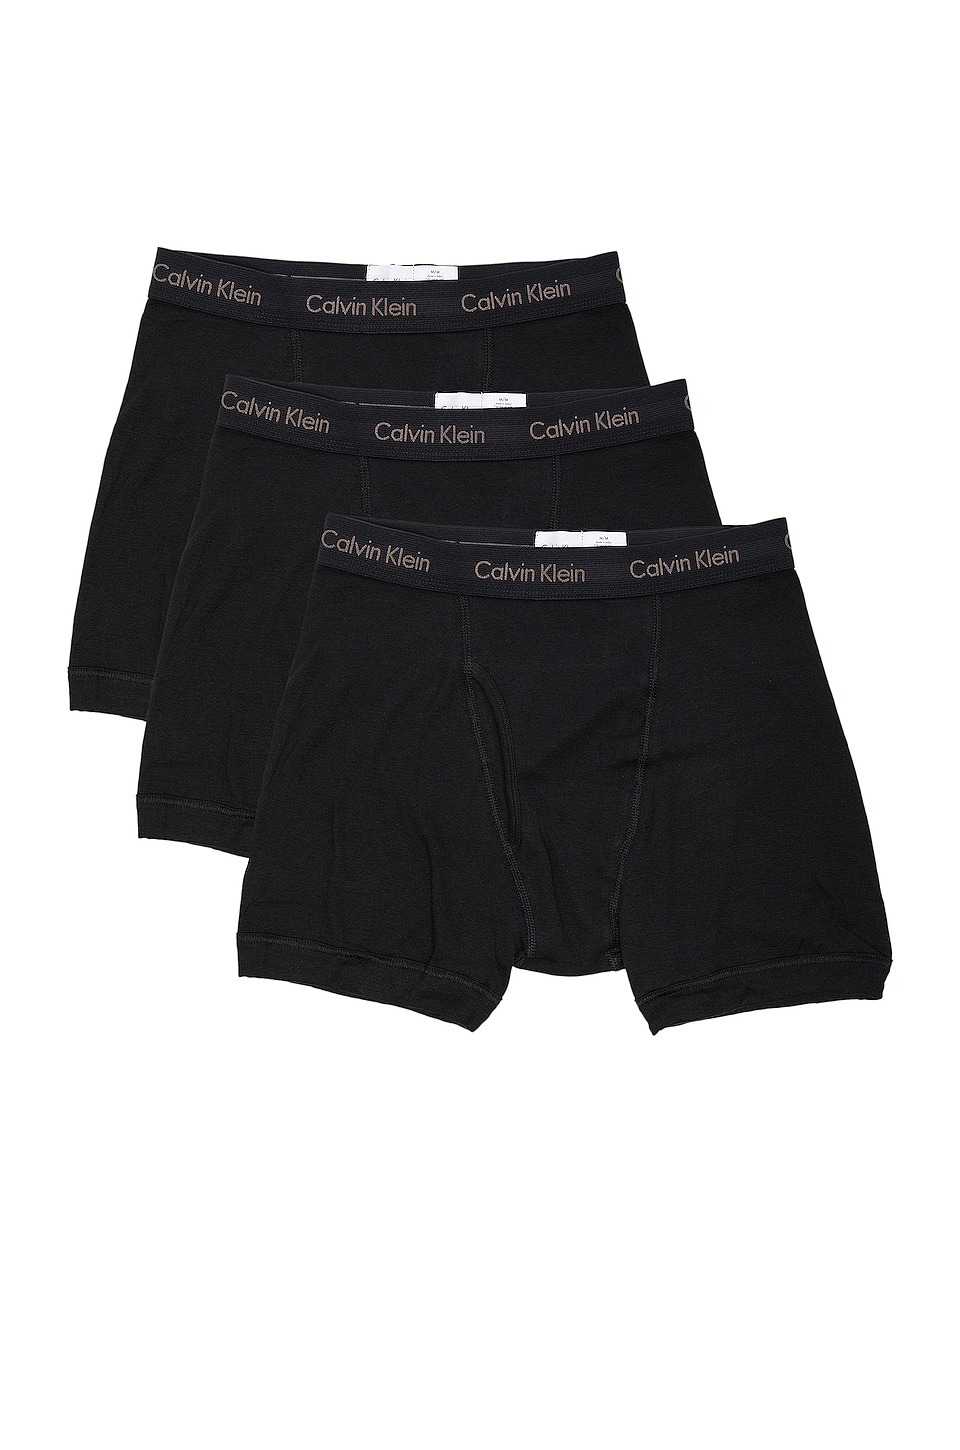 Calvin Klein Underwear Cotton Classics 3 Pack Boxer Briefs & White & Heather Grey in Black